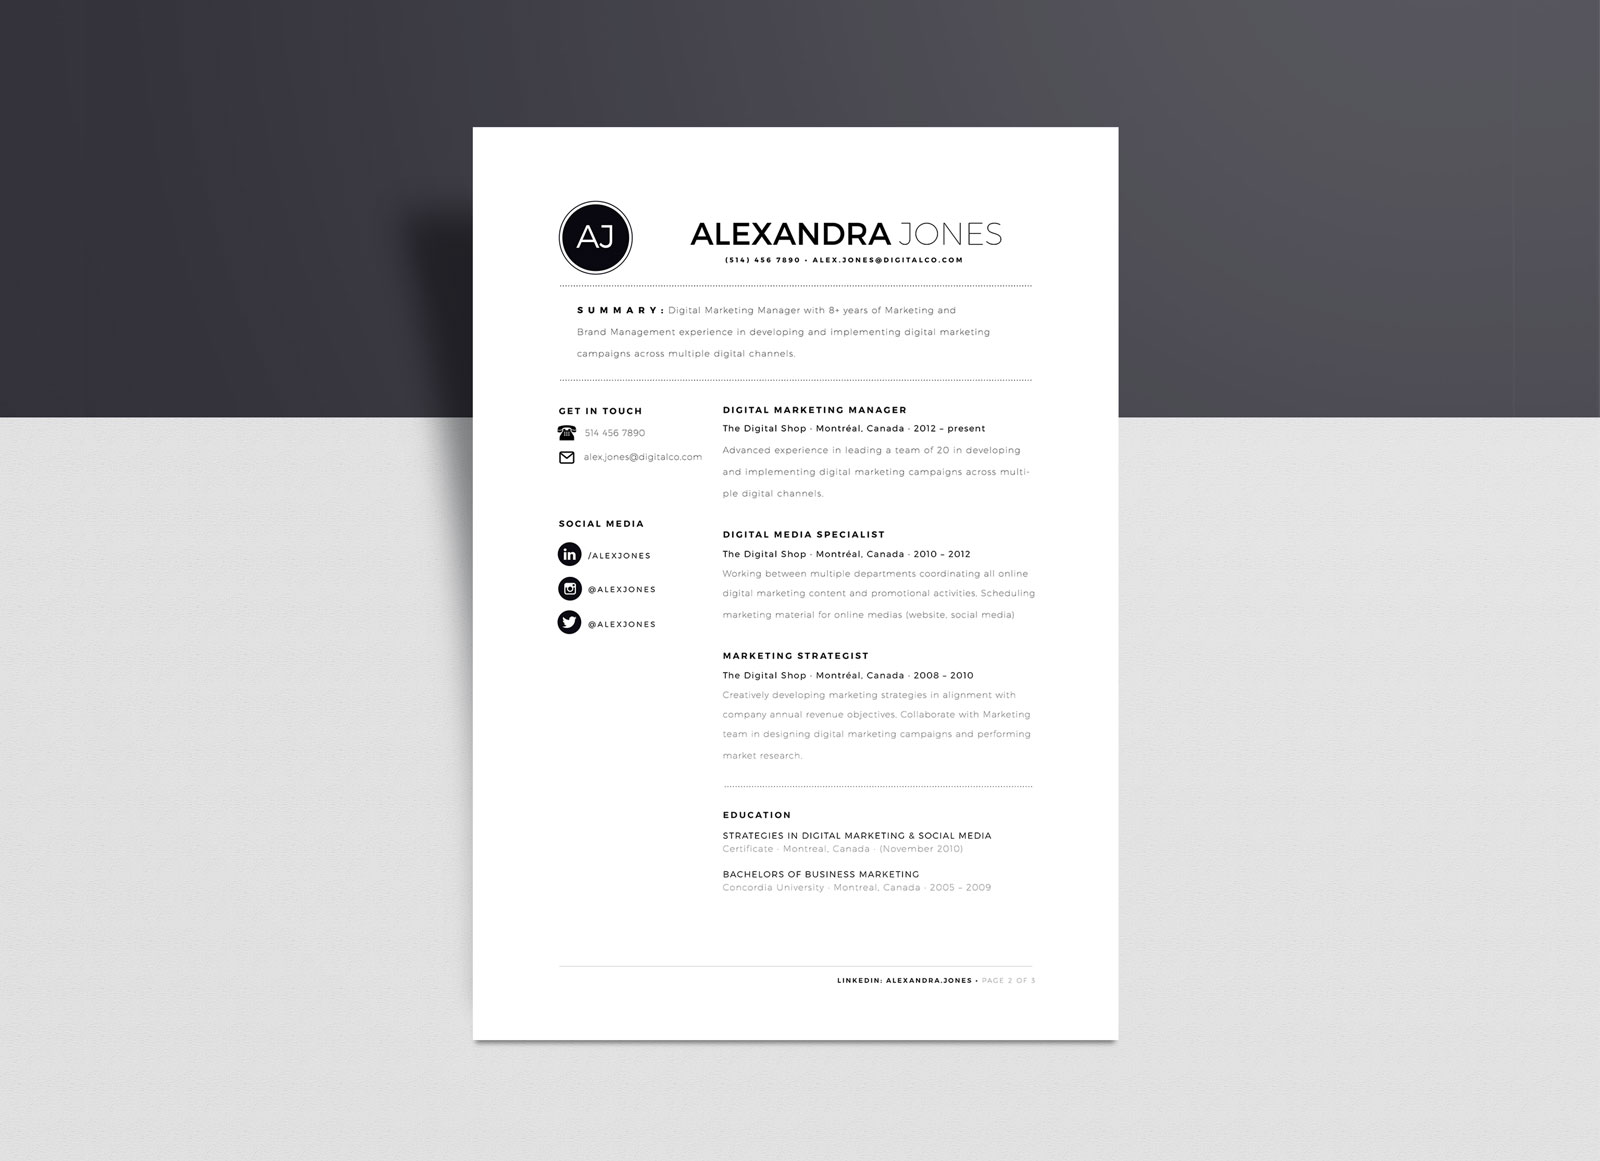 Free-Minimalistic-Resume-Template-in-INDD-Ai-Word-Format-4 T Format Cover Letter Template on cover letter spacing, cover letter header template, library cover letter template, cover letter template t, cover letter general template, traditional letter template, cover letter outline, online cover letter template, sample application letter template, resume template, writing a cover letter template, receptionist cover letter template, cover letter examples, cover letter word or pdf, clerical cover letter template, cover letter set up, microsoft cover letter template, job cover letter template, to whom it may concern cover letter template, cover letter for resume,